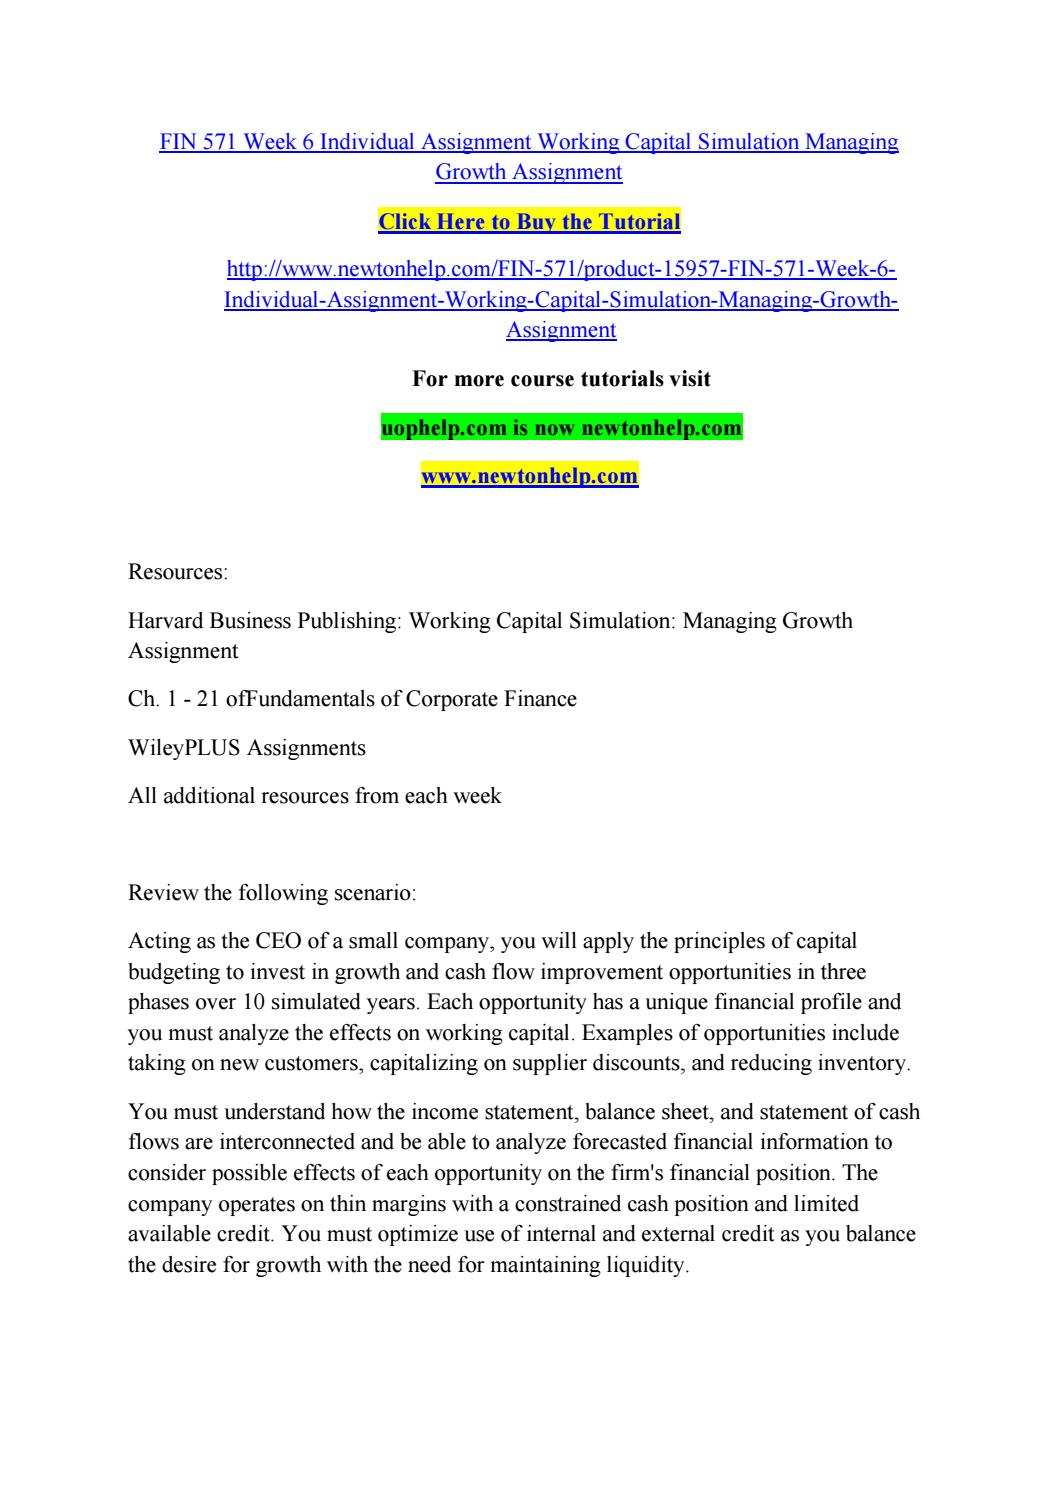 working capital simulation managing growth part 1